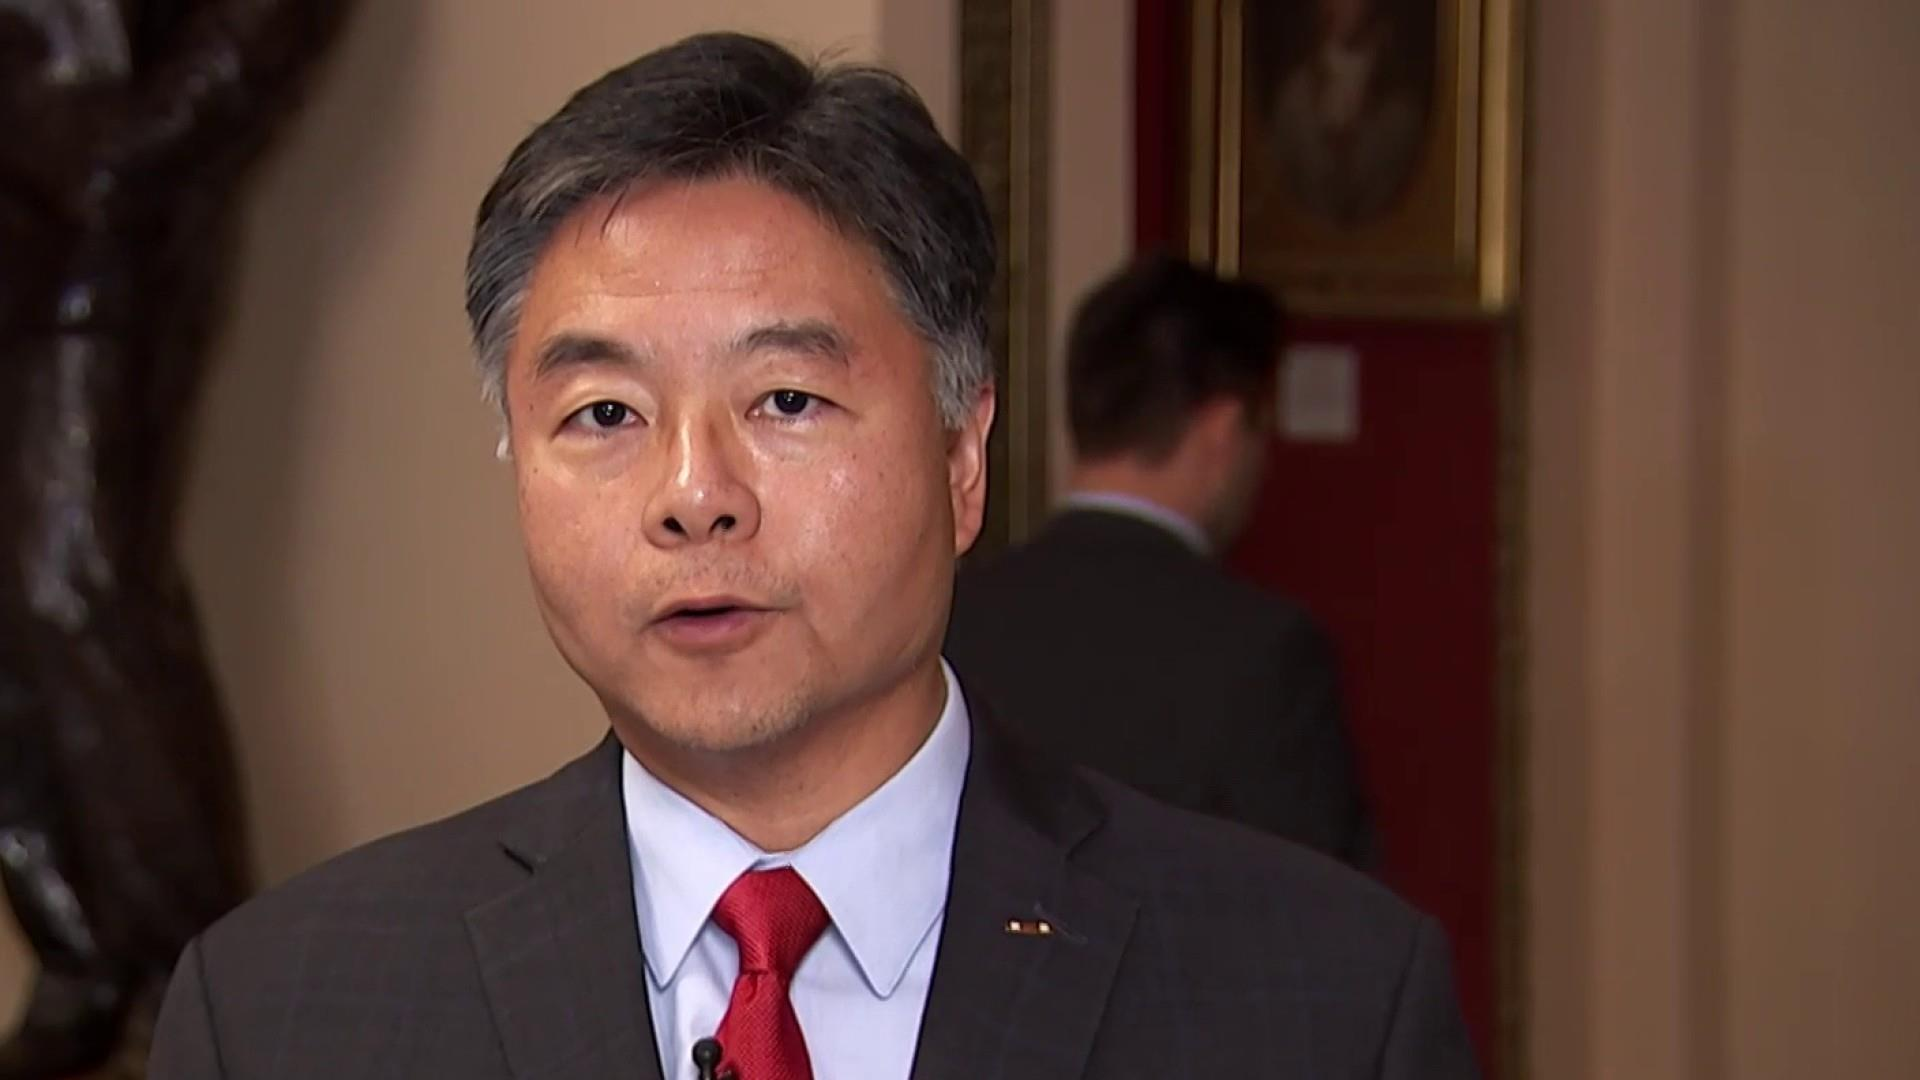 Rep. Lieu: There is already a mountain of evidence that Donald Trump committed multiple felonies